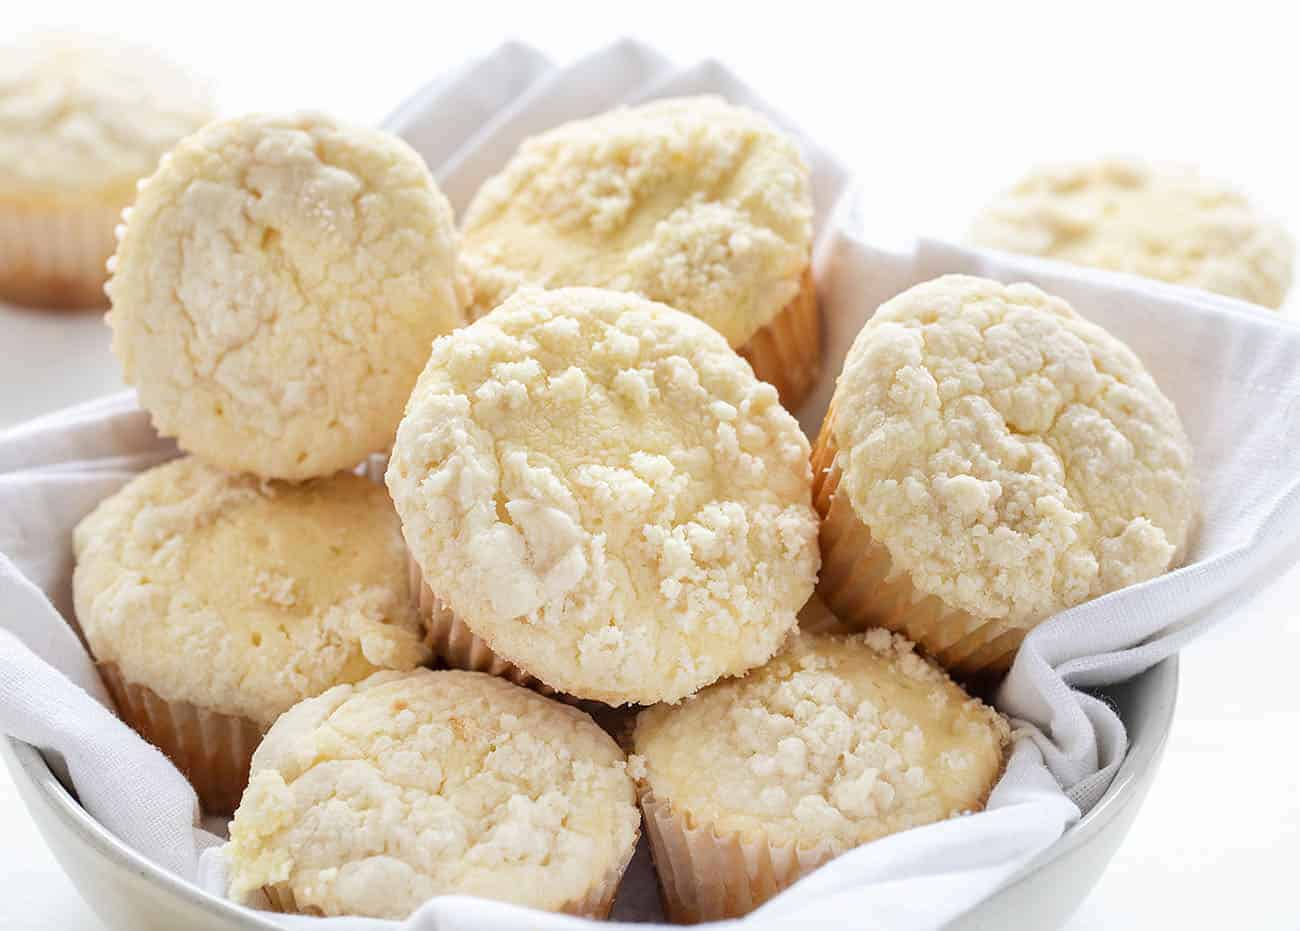 Basket of Cream Cheese Muffins